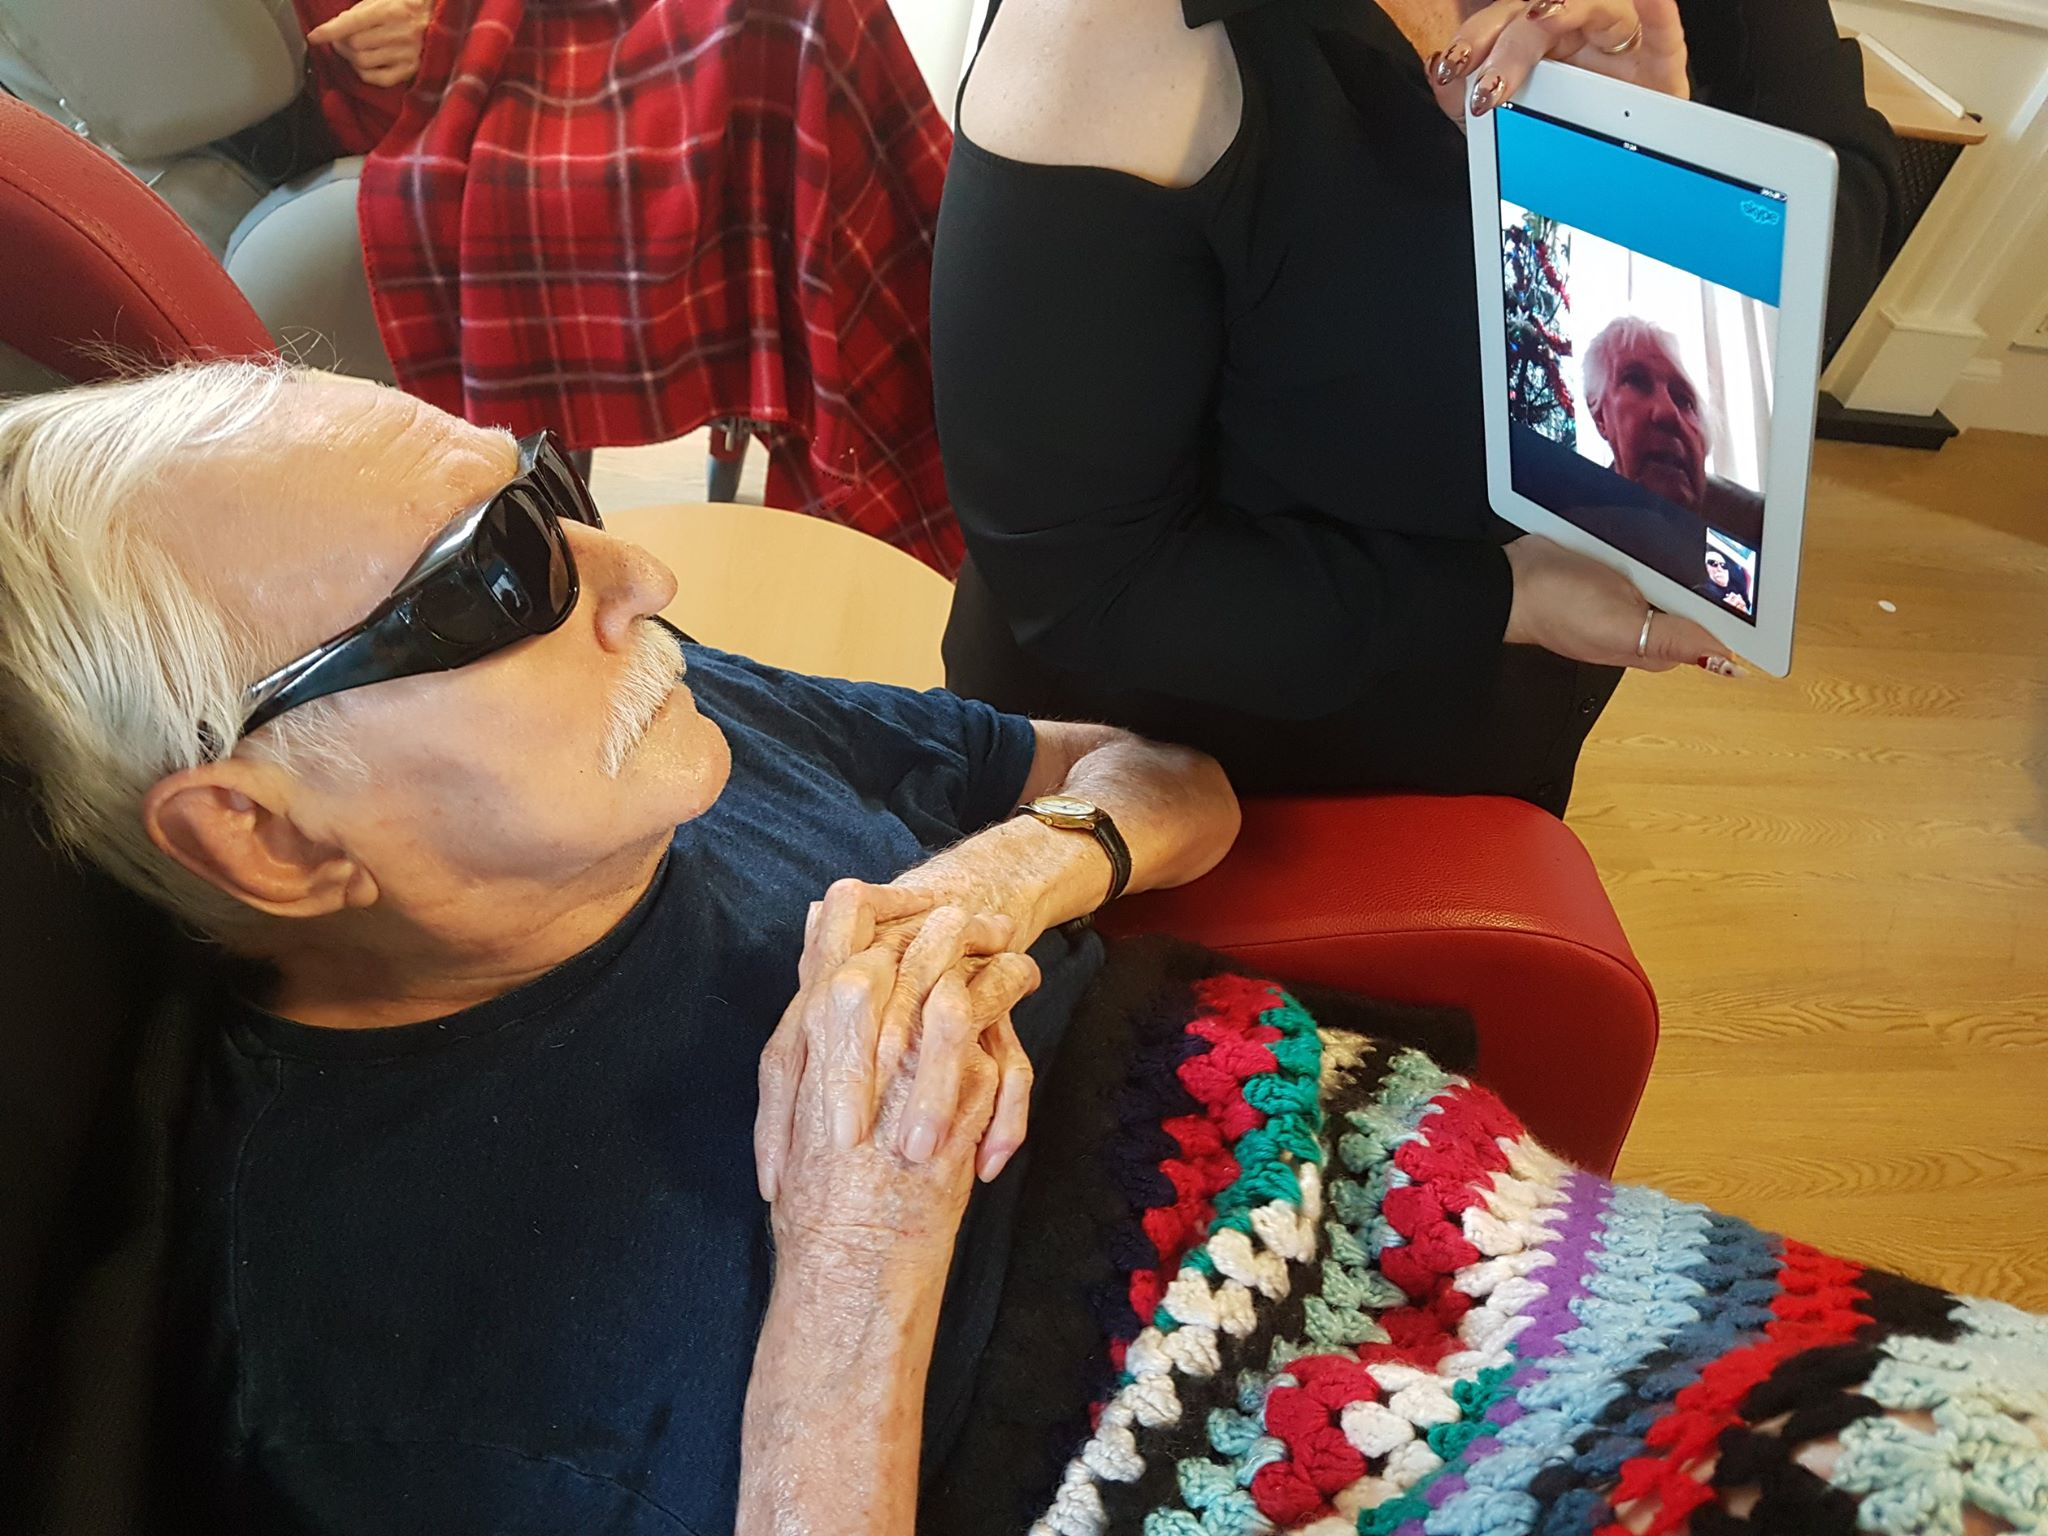 Skype calls keep couple together - despite 10,000 miles separation